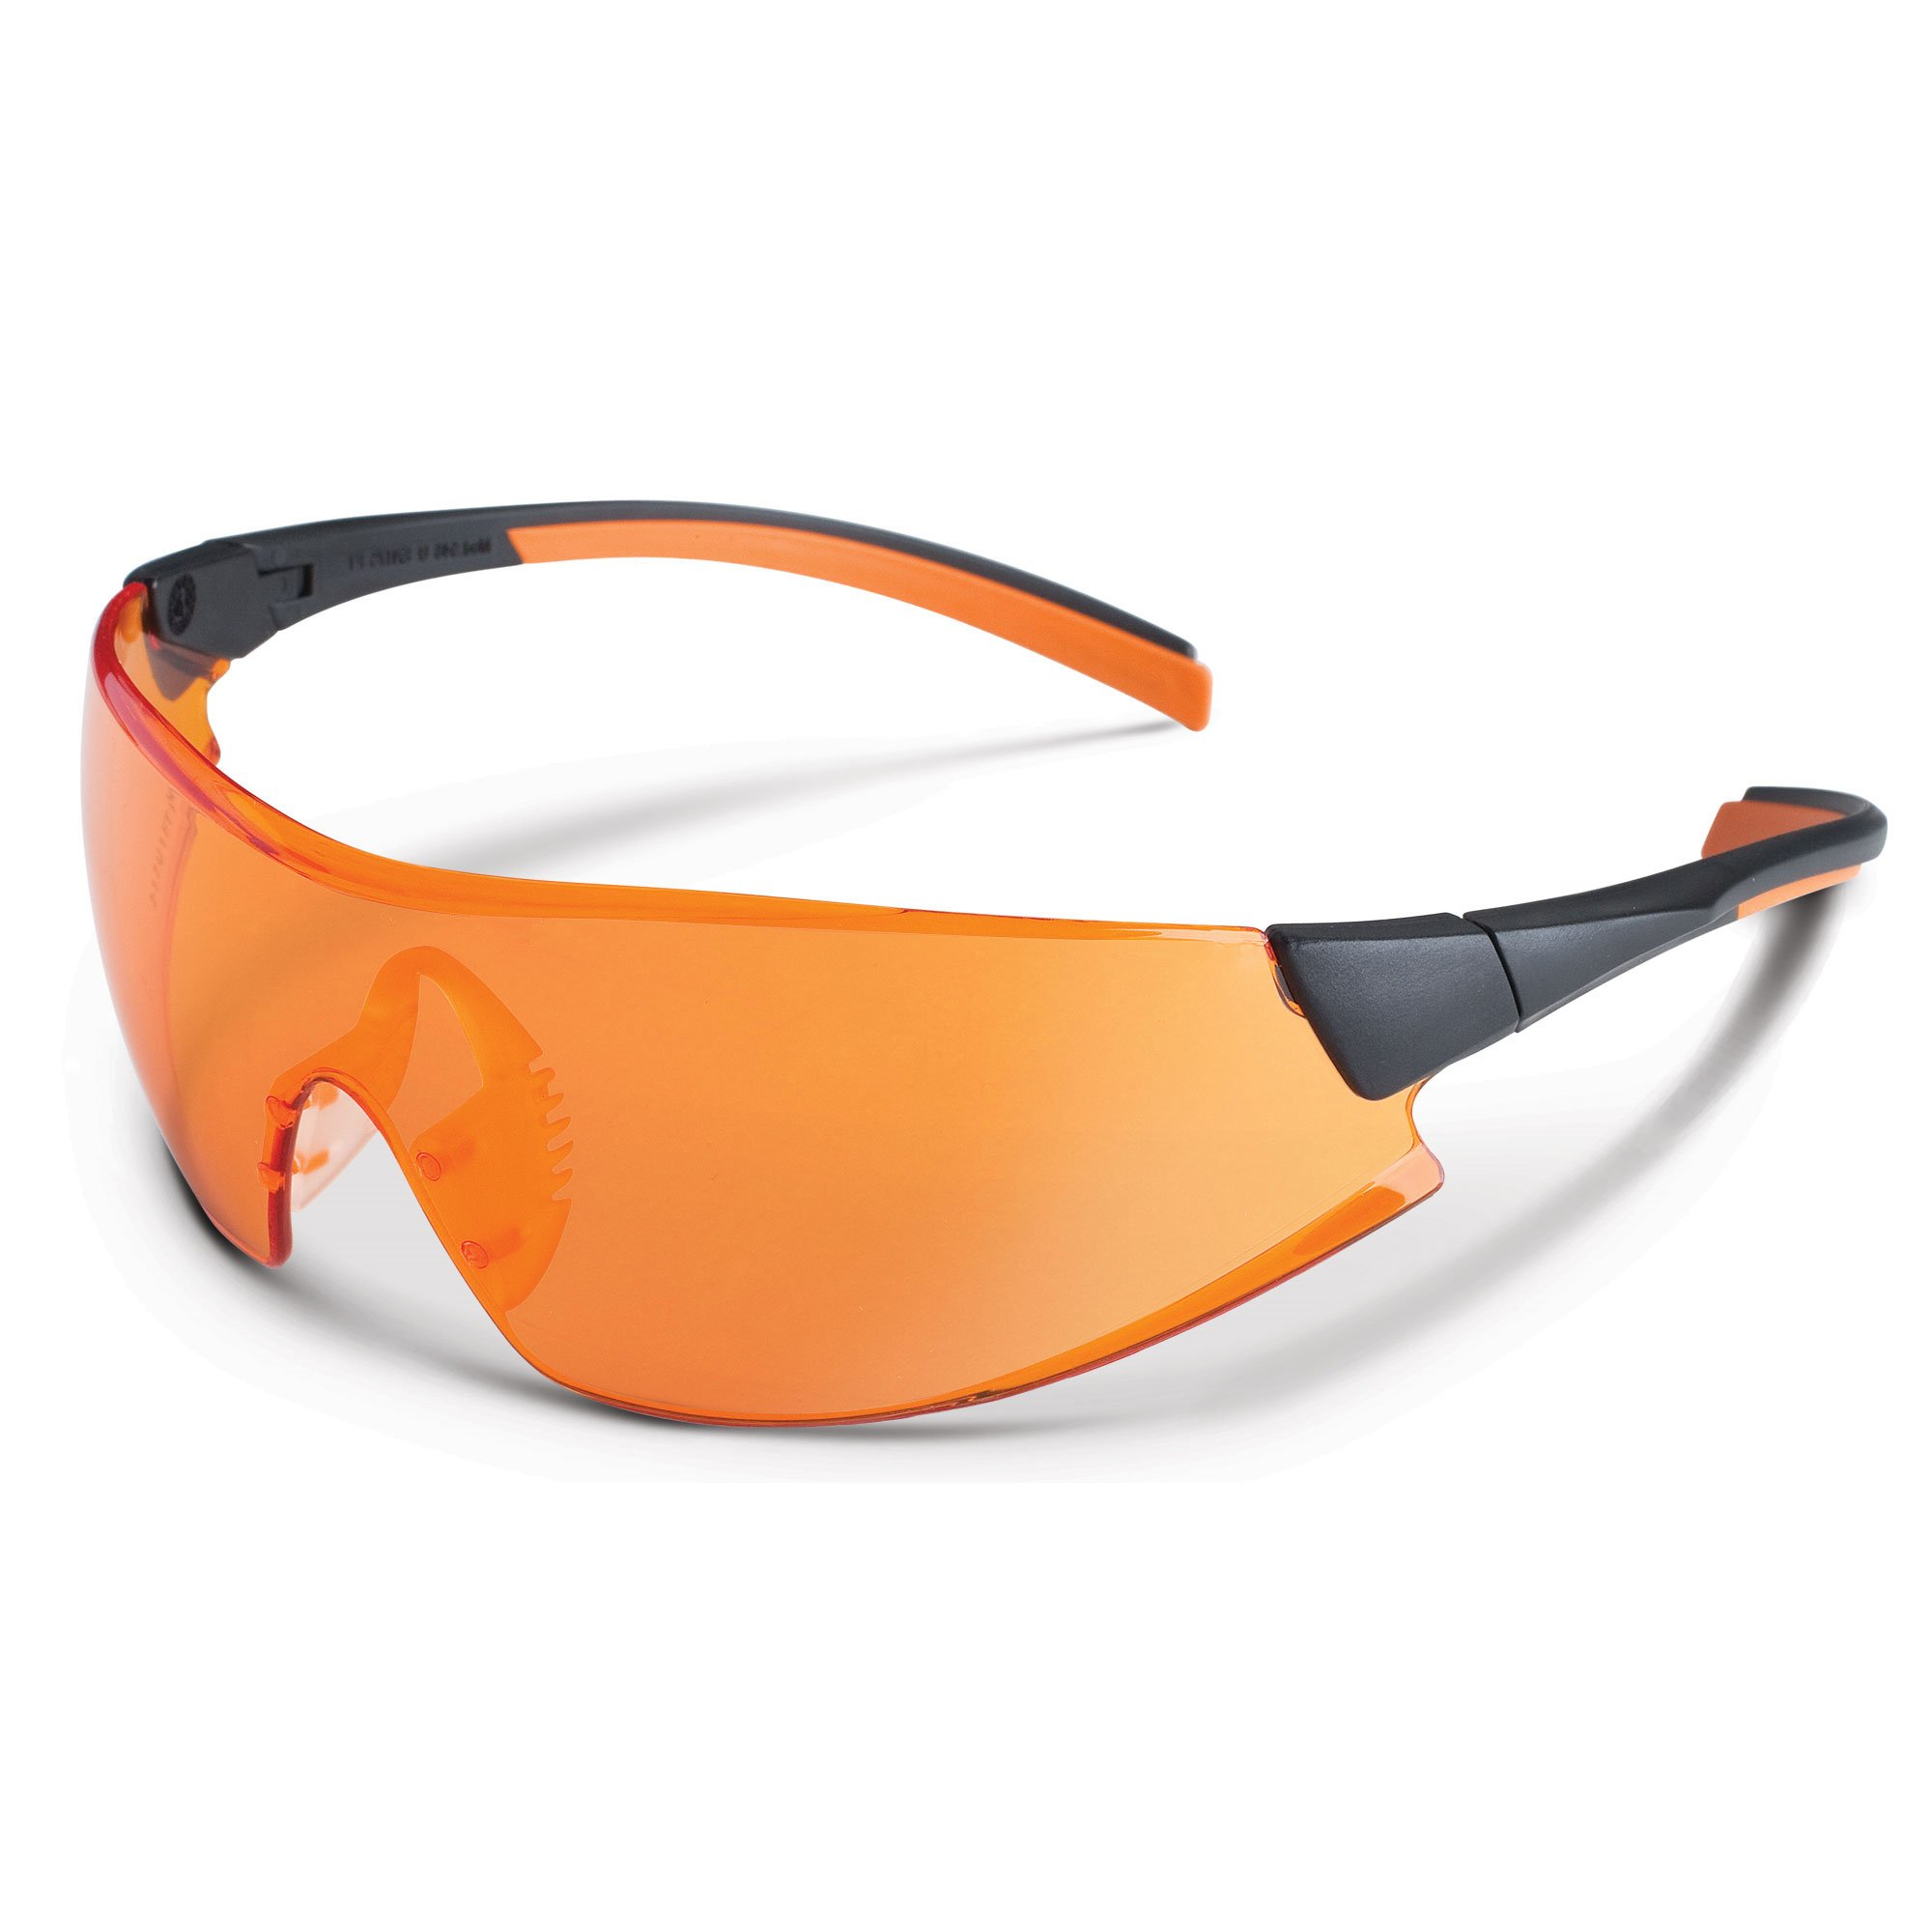 Practicon 7113014 546 Curing Safety Glasses